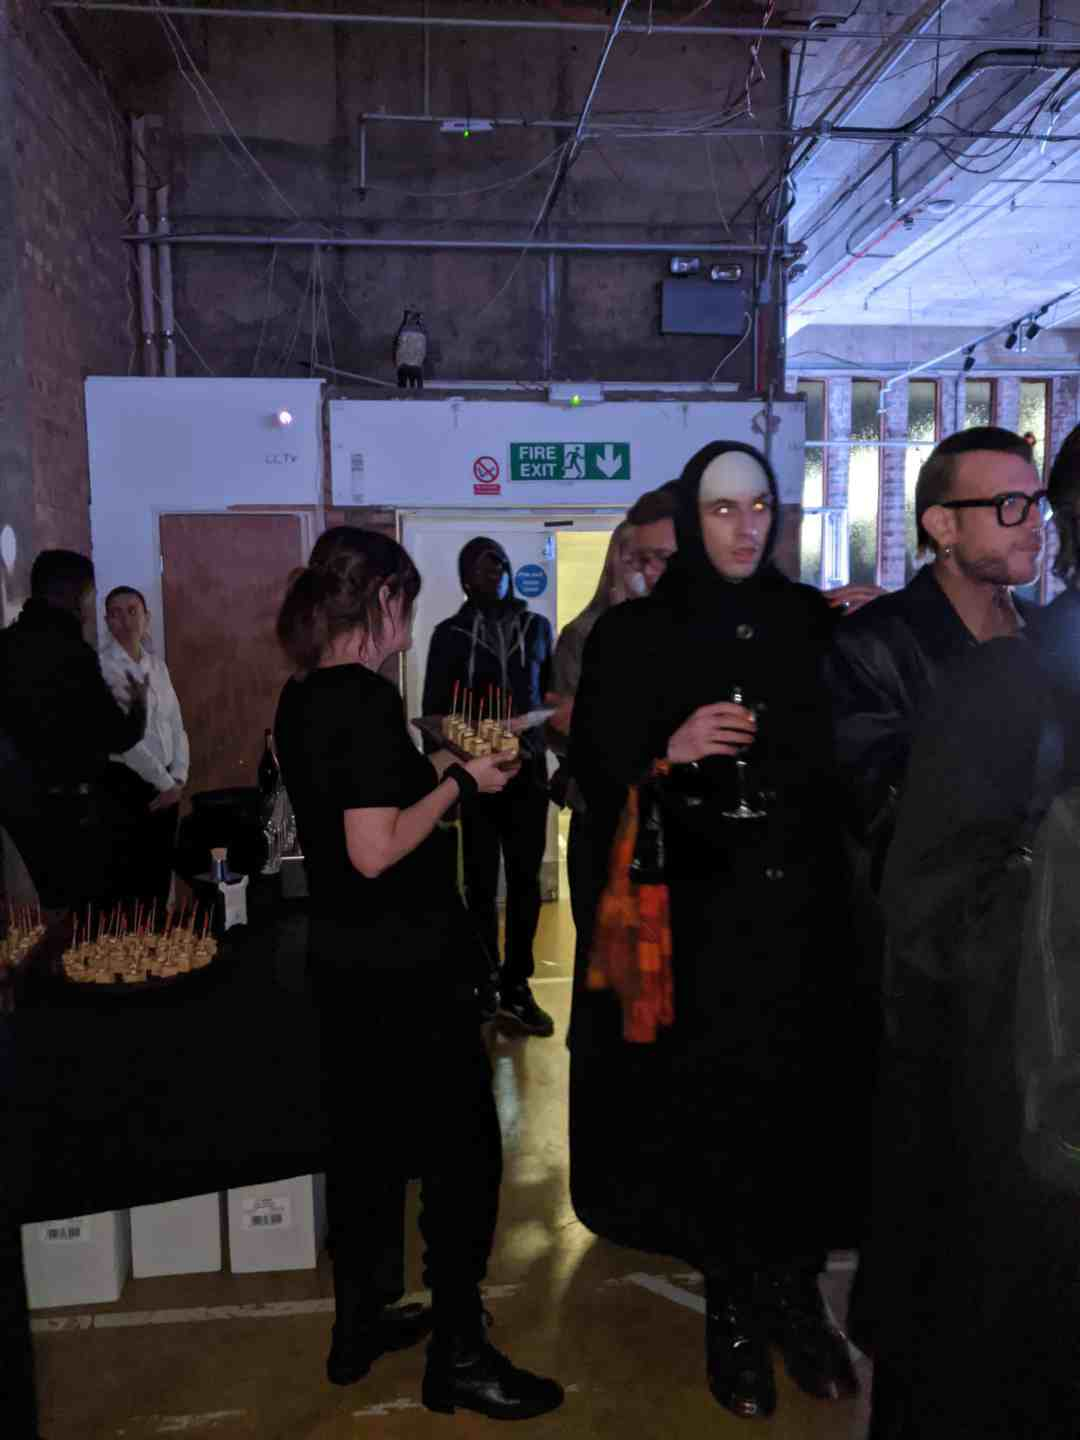 ©®38191613162016135195209451435. Spanish tapas by London Basque Kitchen. AuctionCR28112019, 2019, The Biscuit Factory, London